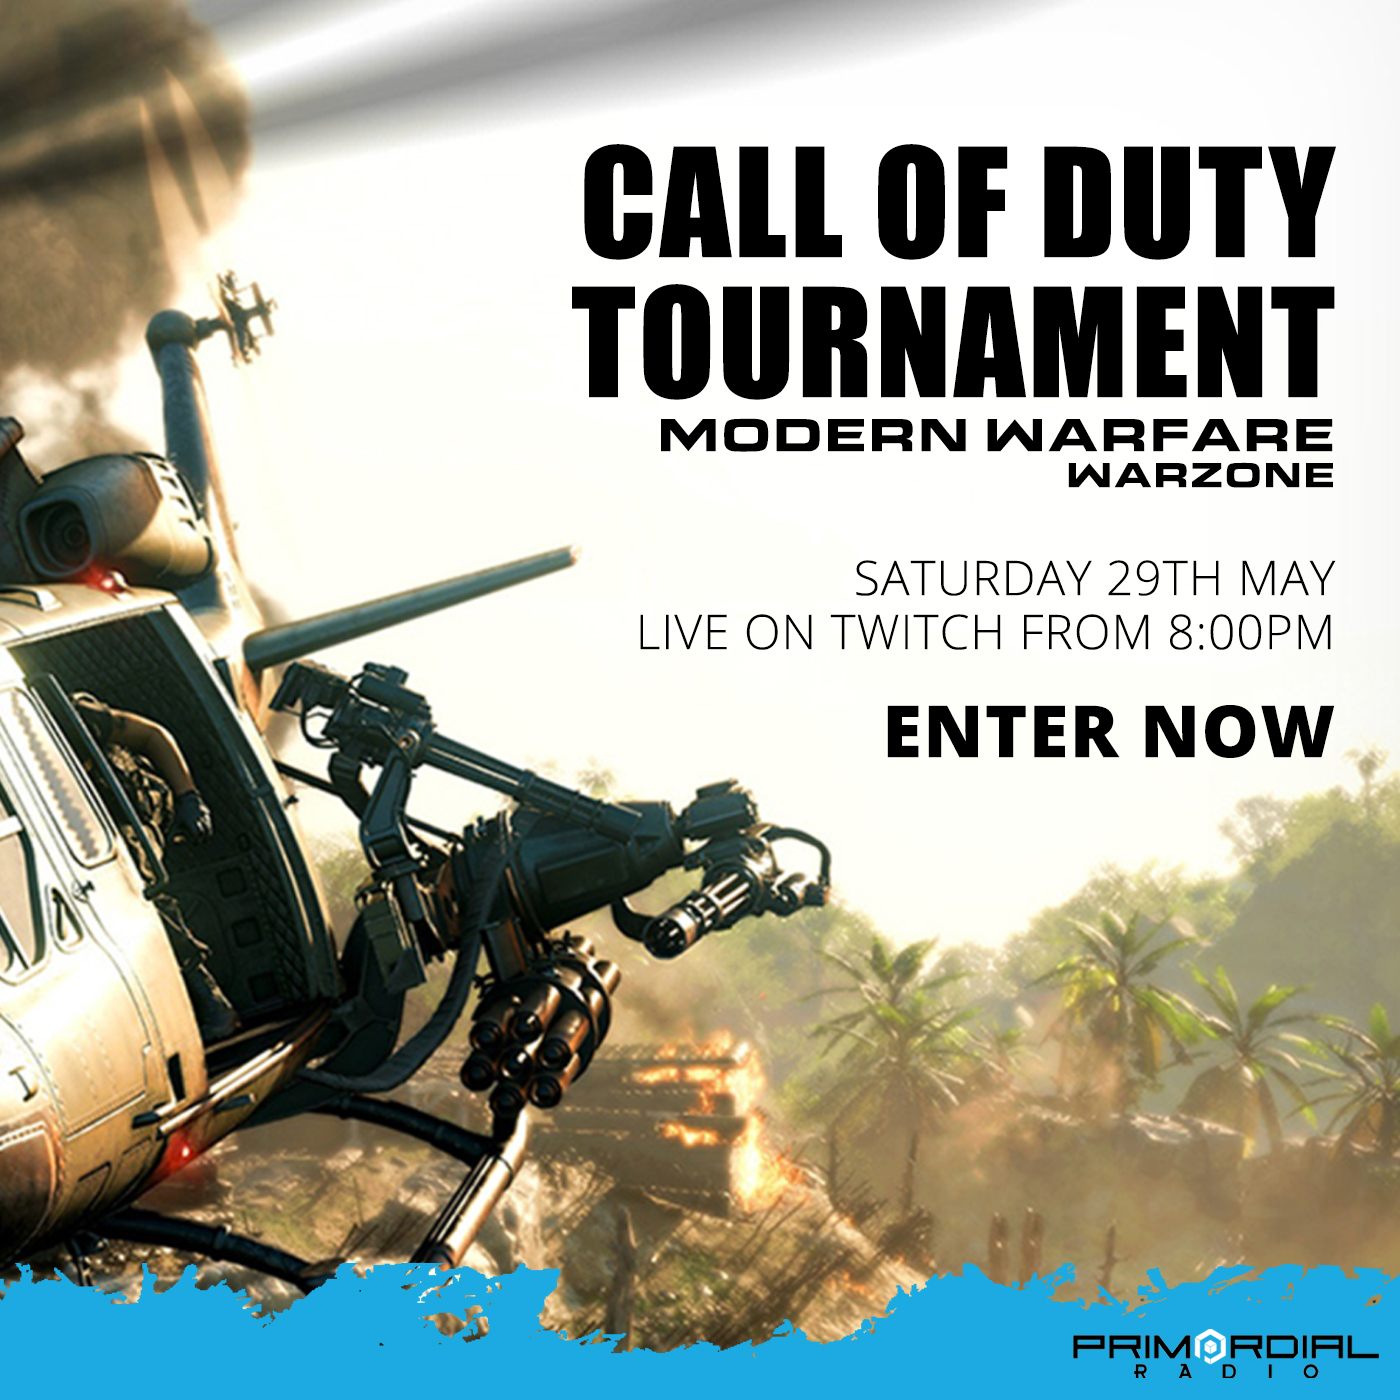 Primordial Radio - Call of Duty Warzone tournament 29th May 2021 - Square